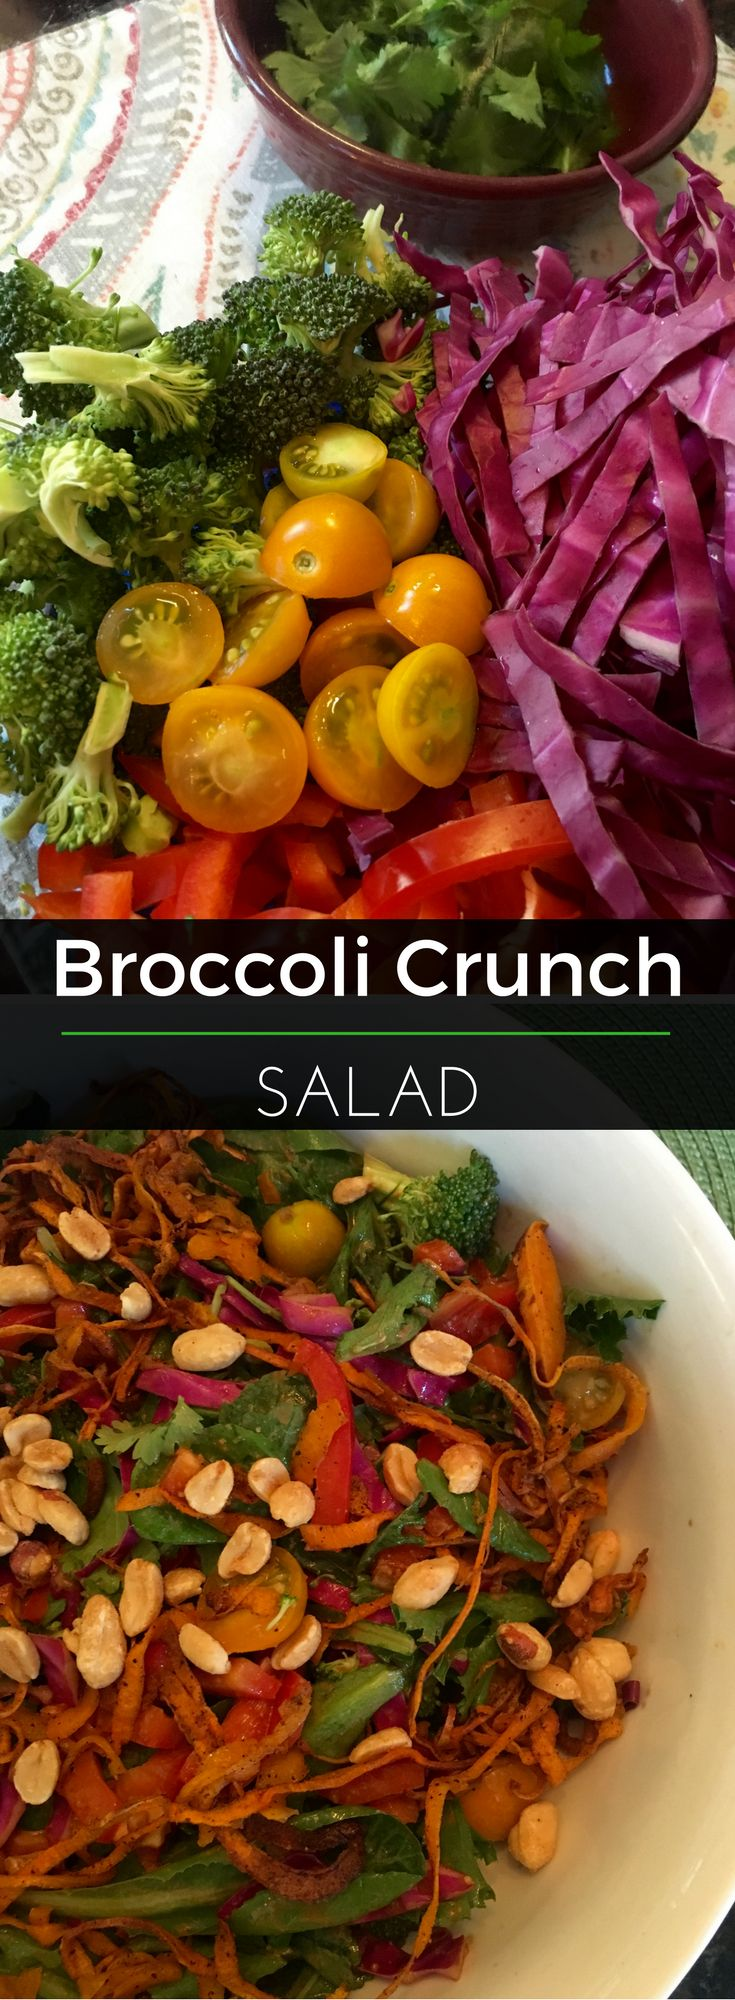 Brighten up your lunch plate with this Broccoli Crunch Salad! So delicious and nutritious. | Clearly Organic Nutritionist Corner